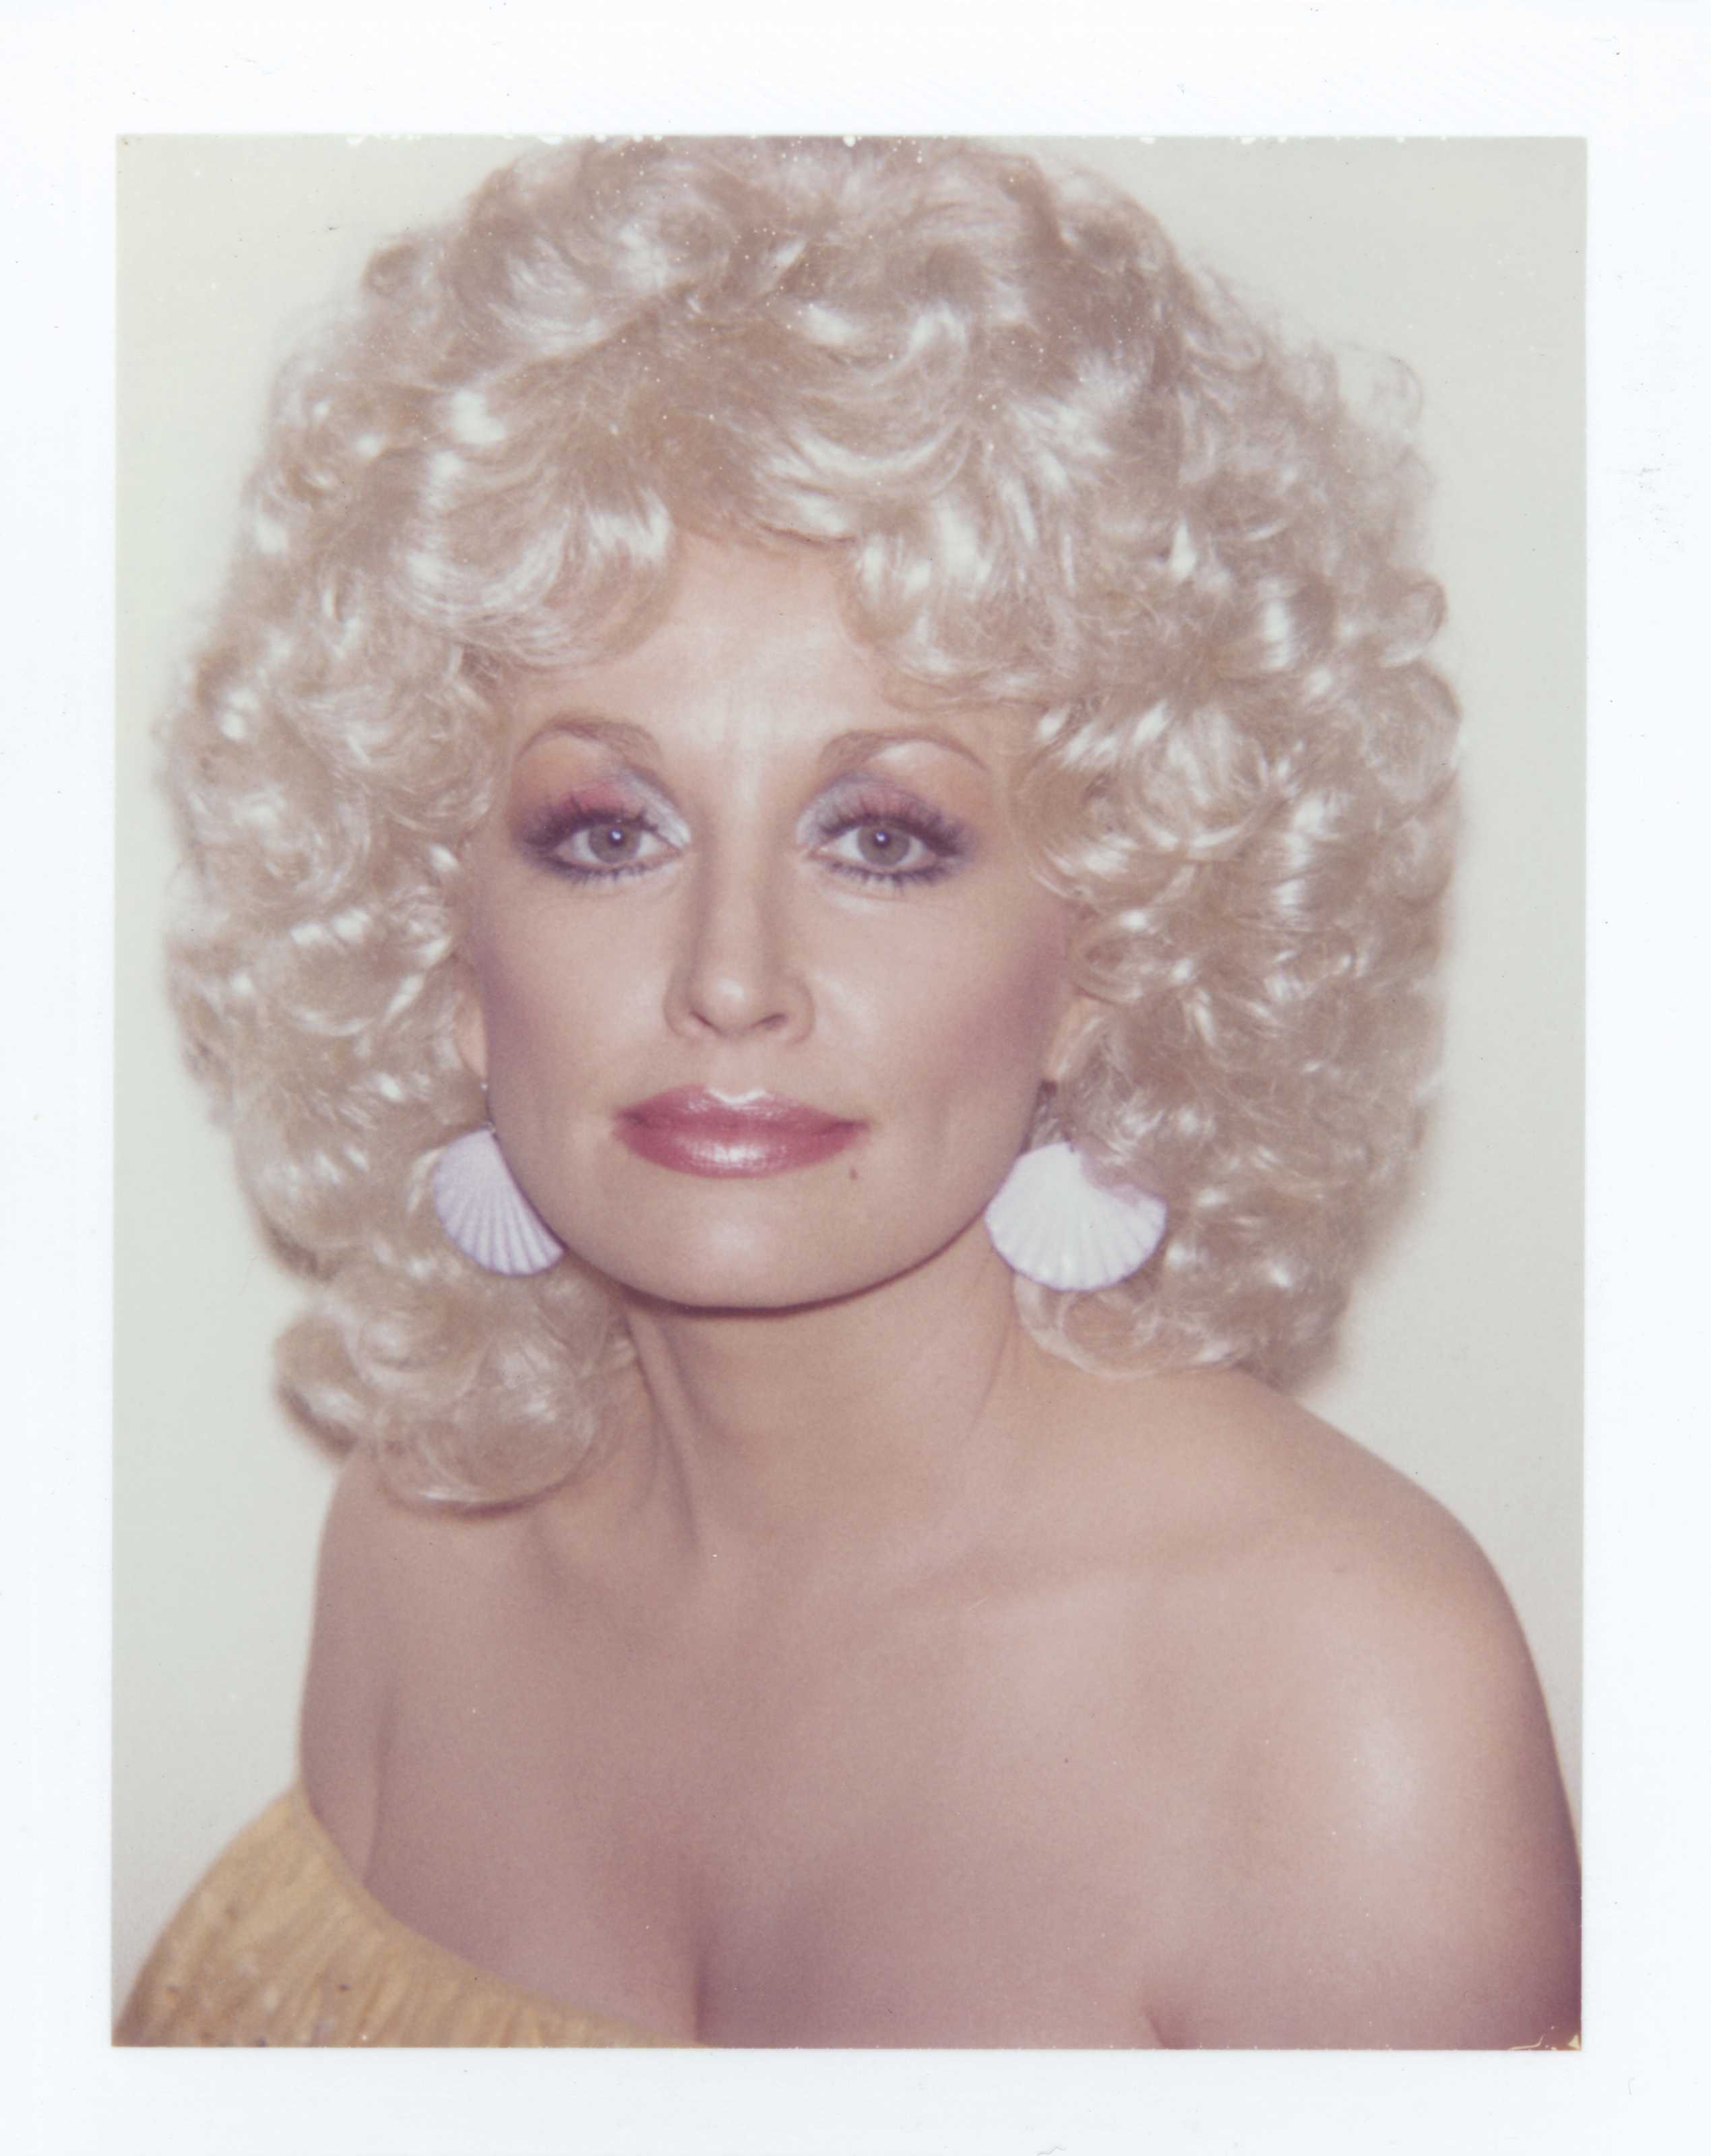 Dolly Parton photographed by Andy Warhol (Polaroid)